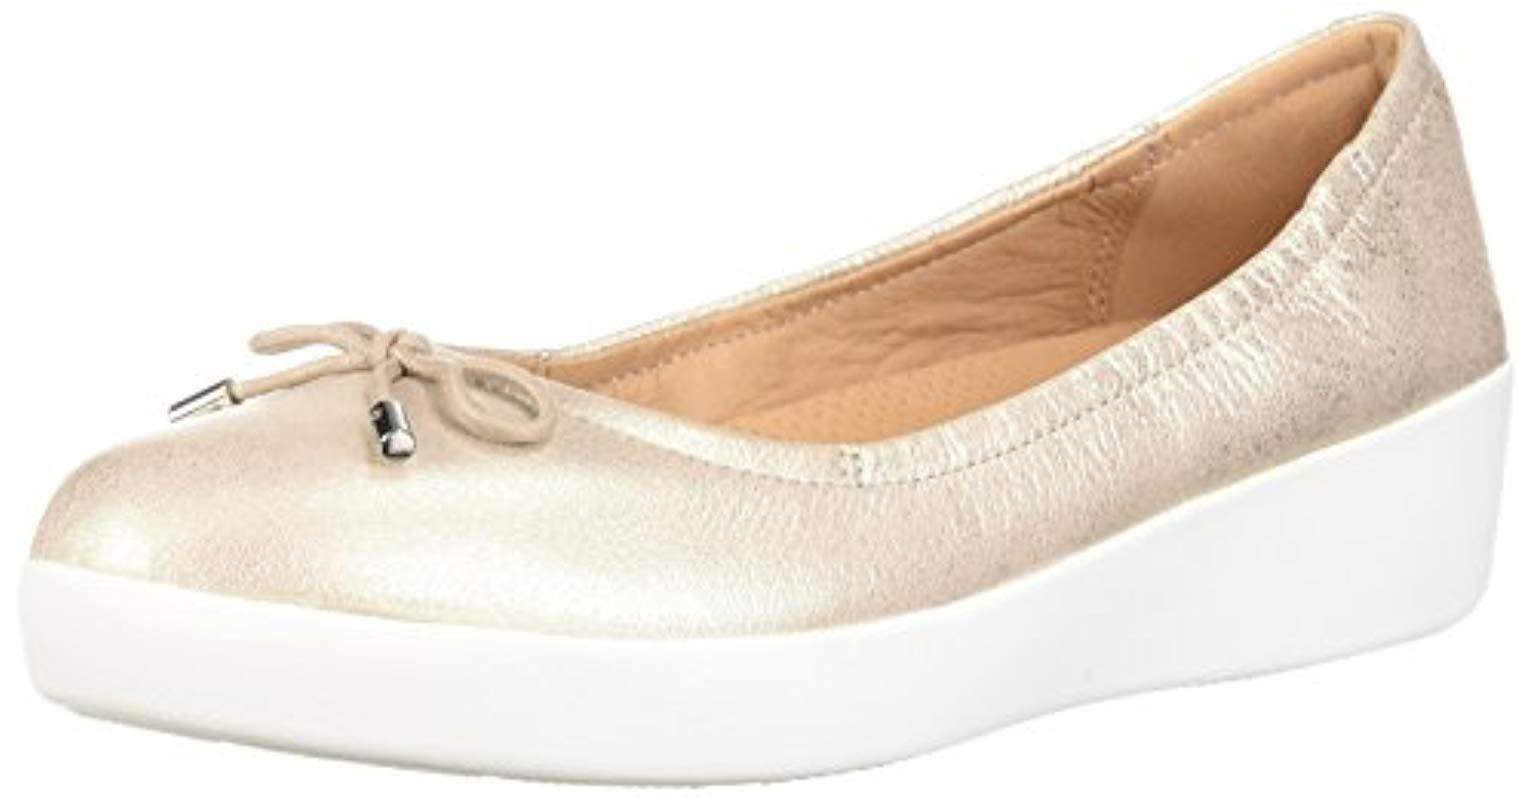 b01e3d417290af Fitflop Superbendy Ballerinas Closed Toe Ballet Flats in Metallic ...